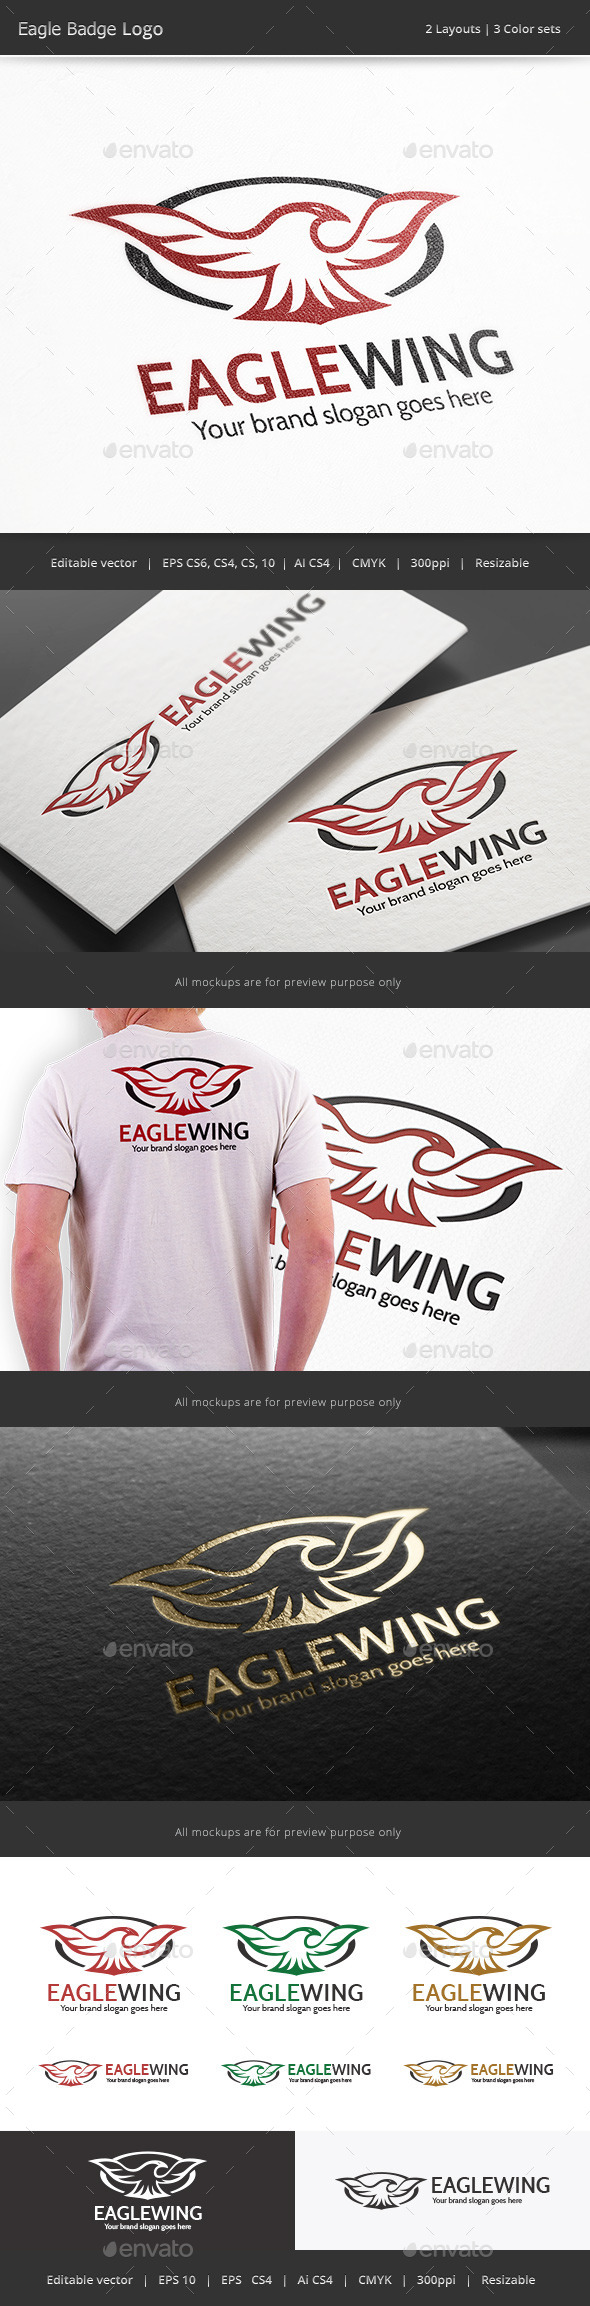 Eagle Badge Logo - Crests Logo Templates